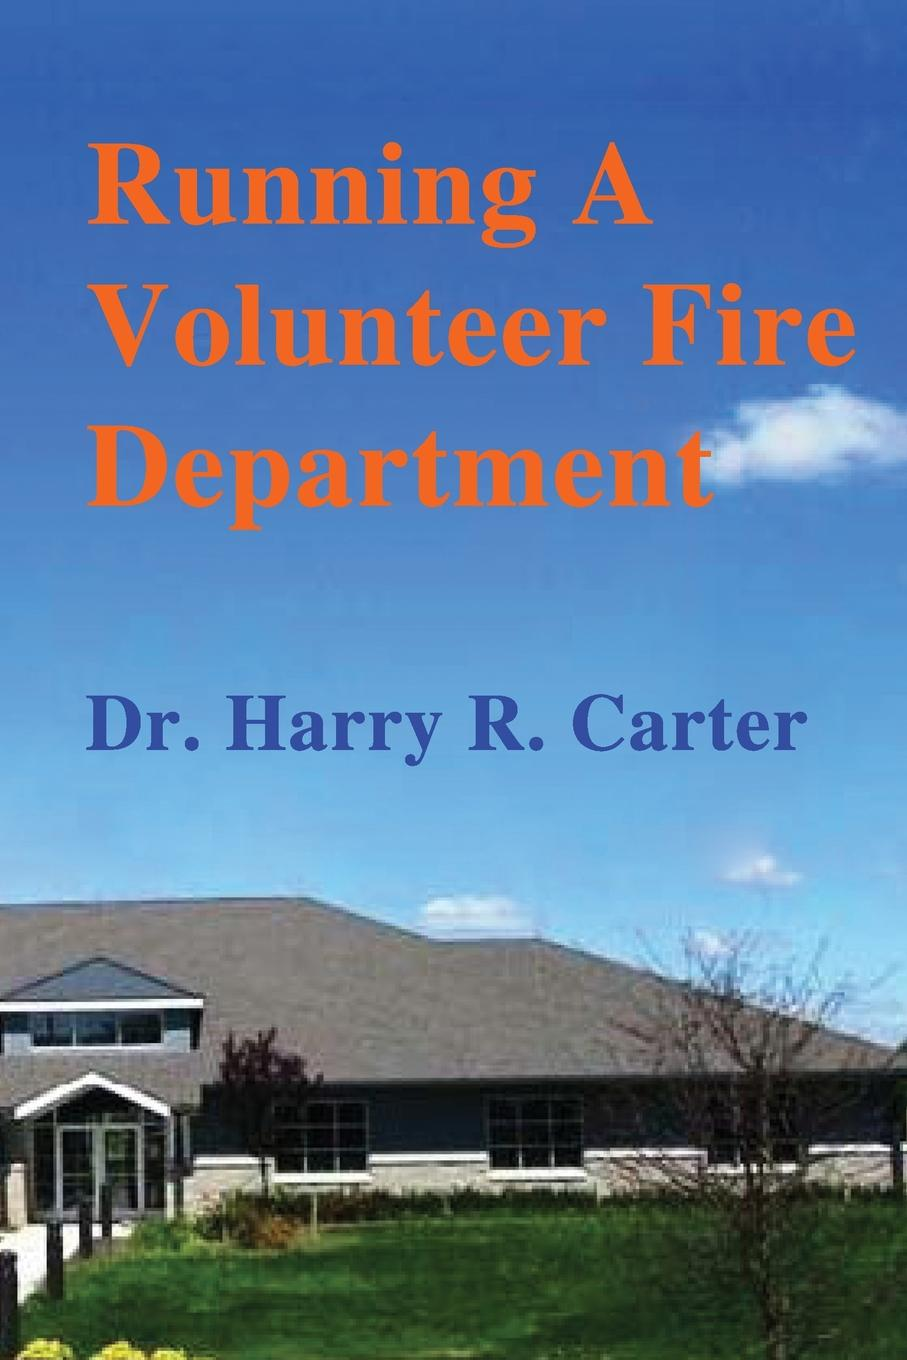 Dr. Harry R. Carter Running A Volunteer Fire Department front high back seat covers set fire fighter firefighters maltese cross fire department custom logo